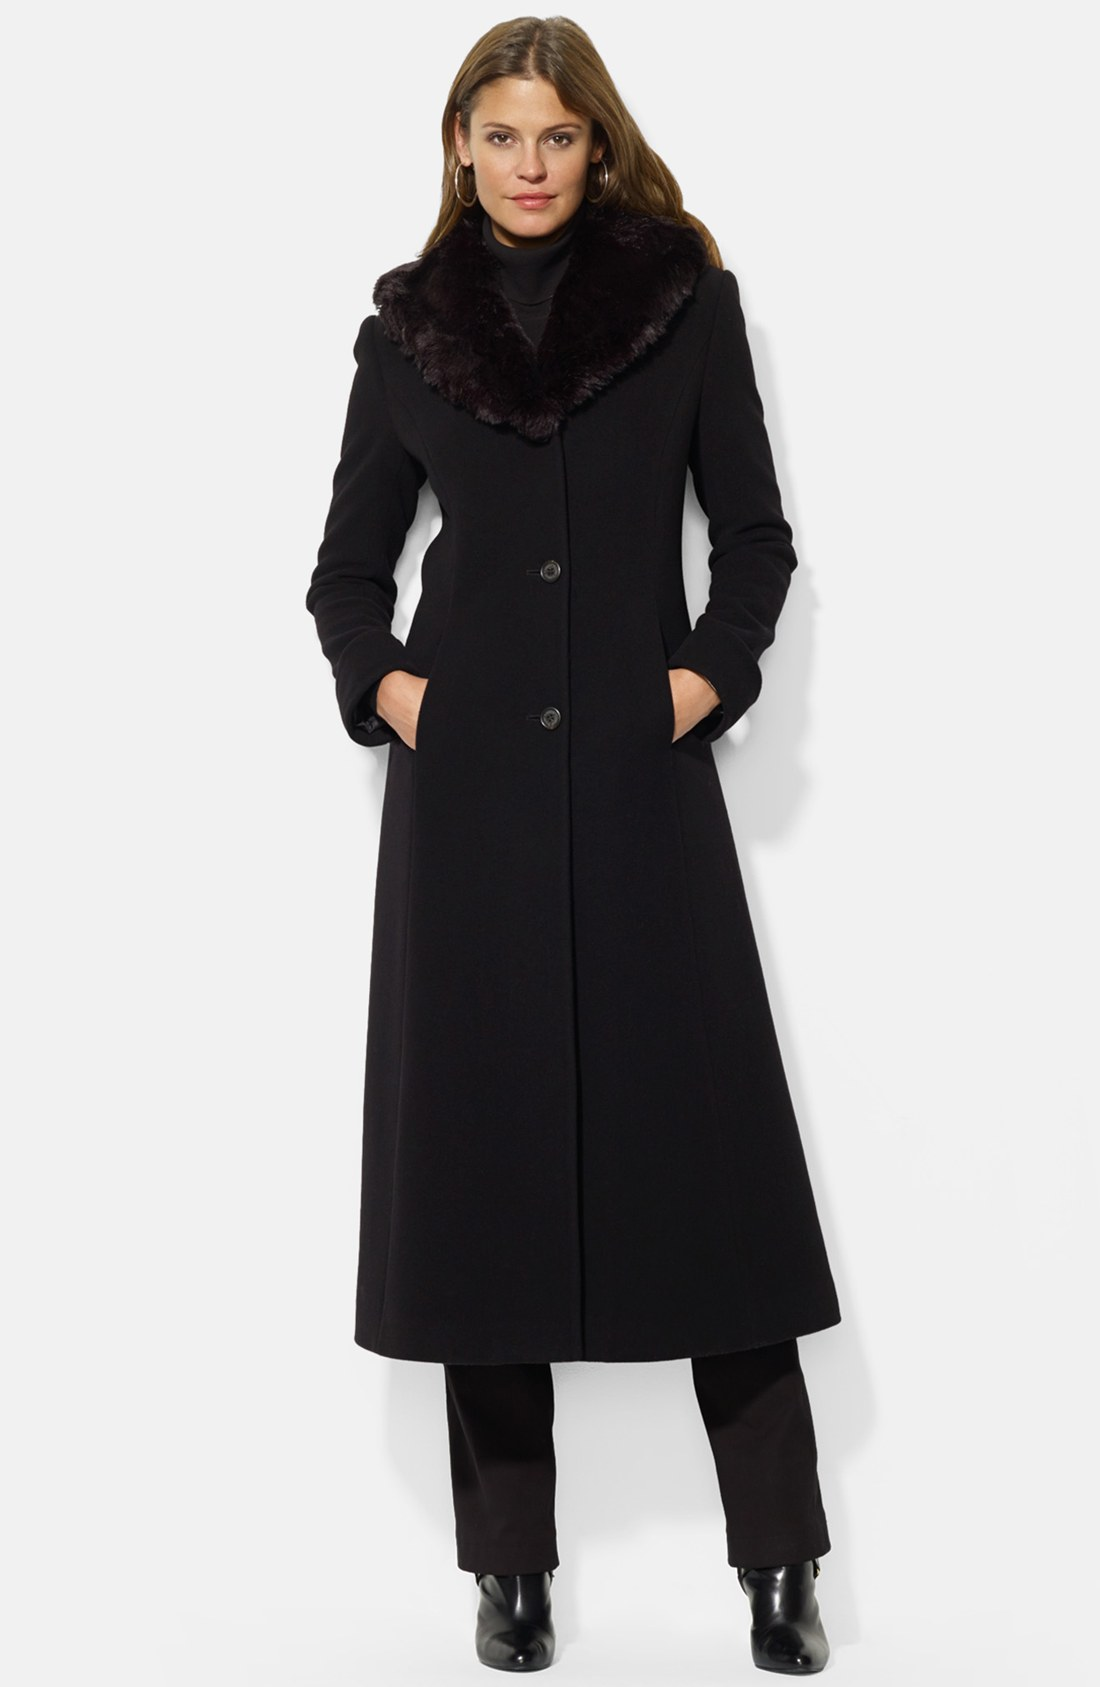 Long Wool Coat: The Best Ways To Wear One